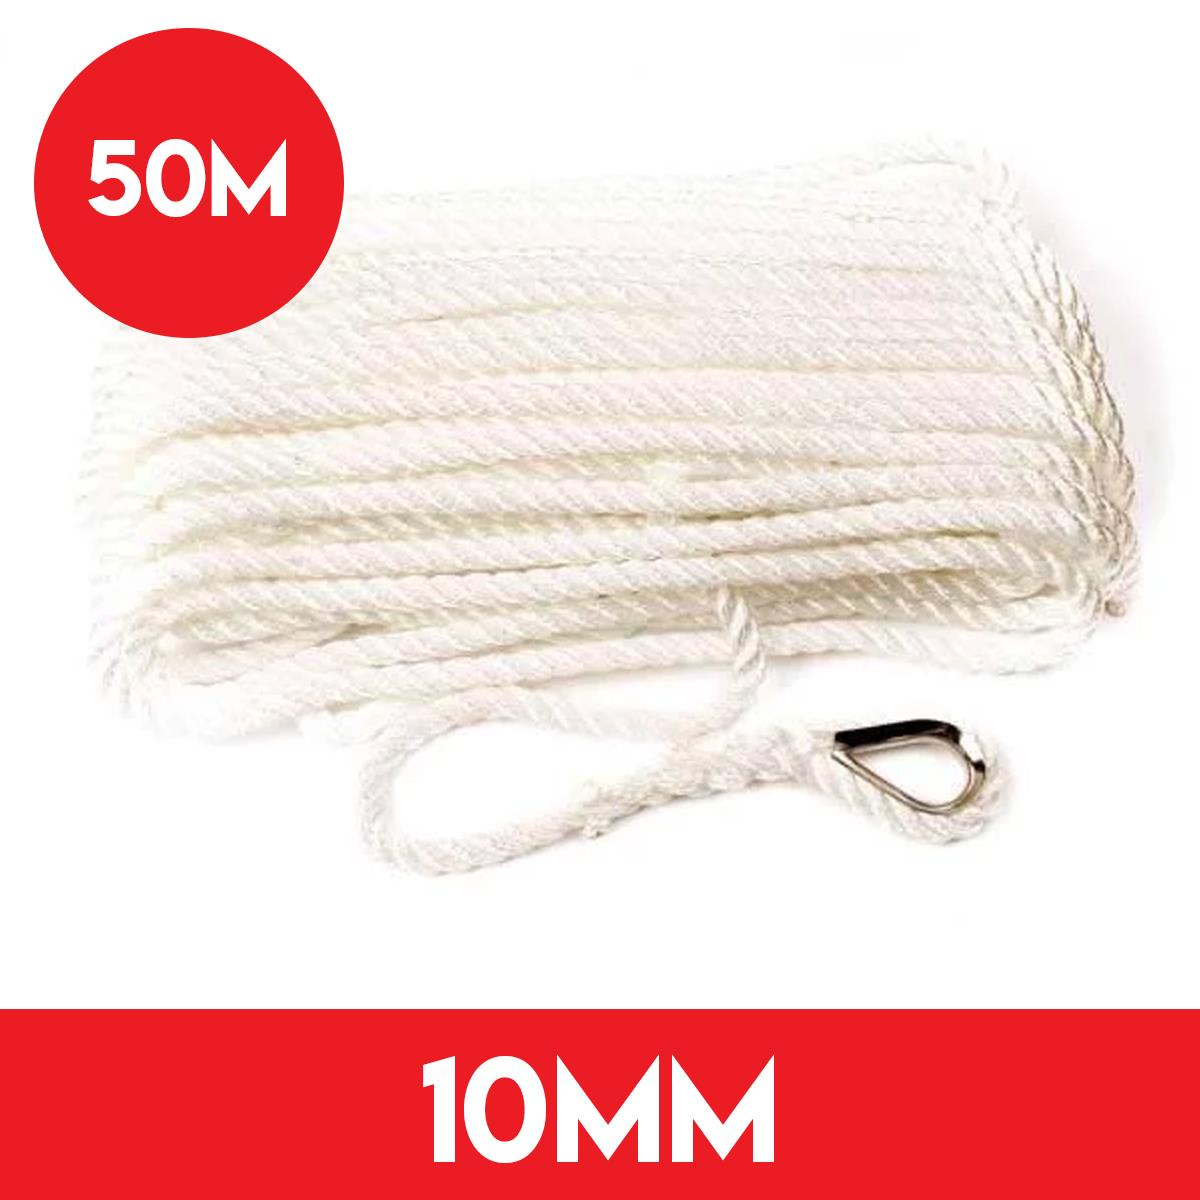 10mm Pre Spliced Anchor Line - 50 Meters